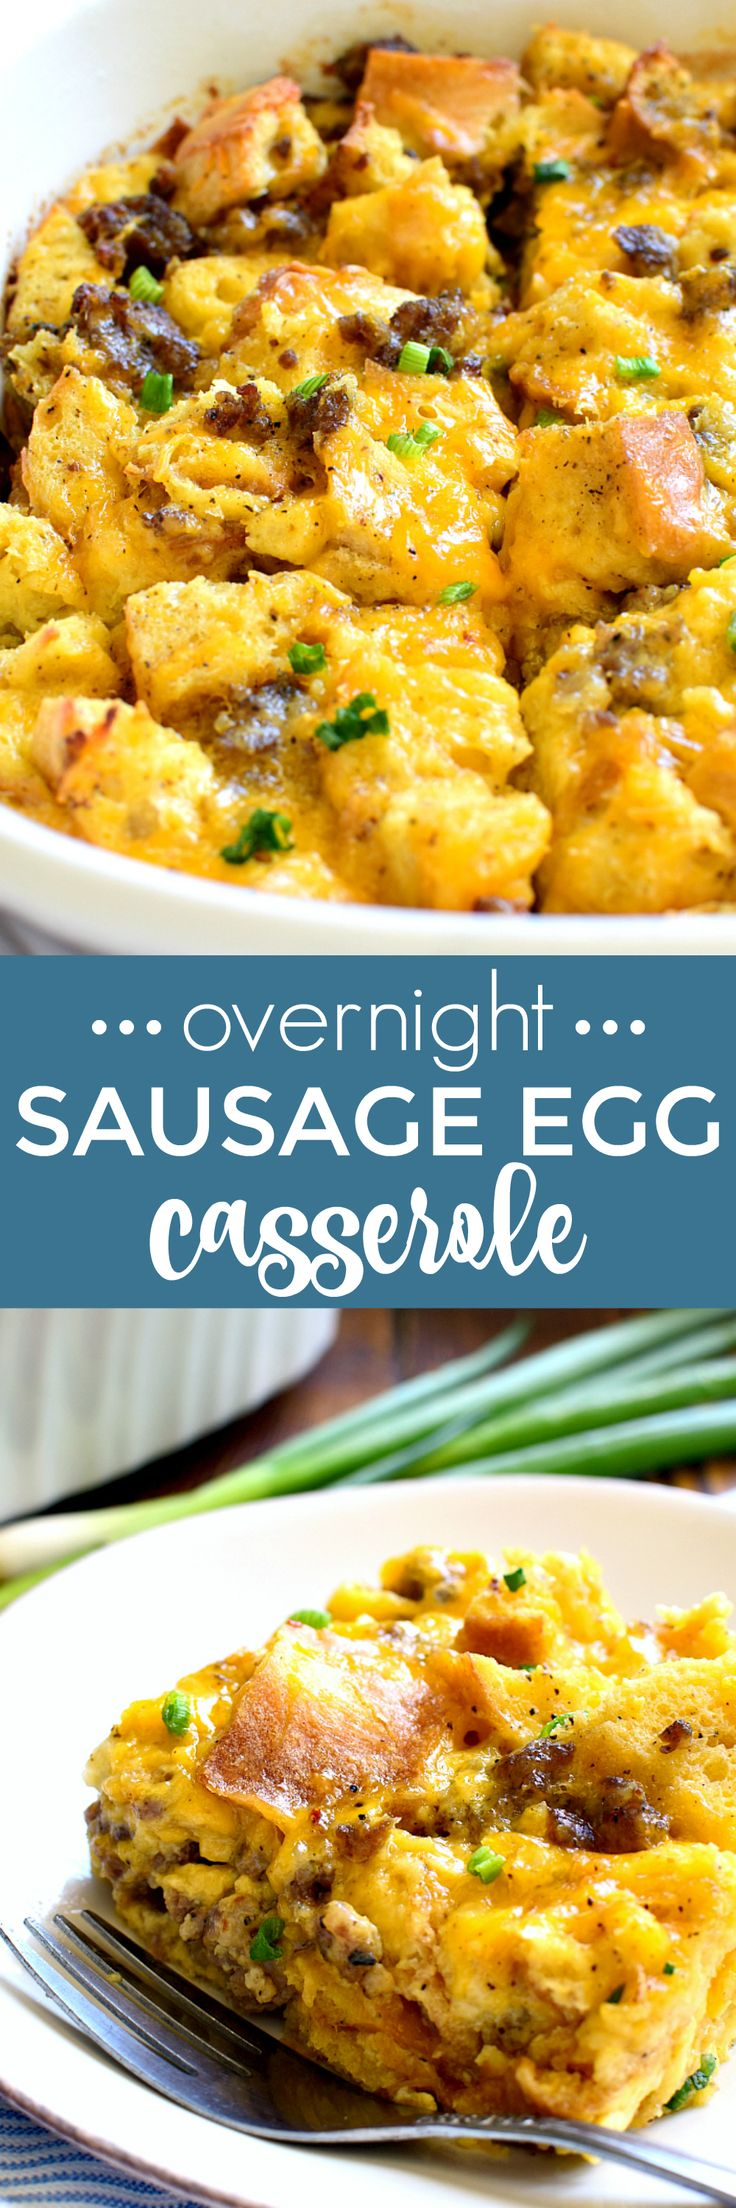 This Overnight Sausage Egg Casserole is a delicious addition to any breakfast! Perfect for holidays or special occasions, this easy egg casserole can be prepped in advance and popped in the oven the next morning. Your family will love the simple, delicious flavors of this classic egg casserole....guaranteed to become a favorite! #crystalfarmscheese #cheeselove #ad @crystalfarms